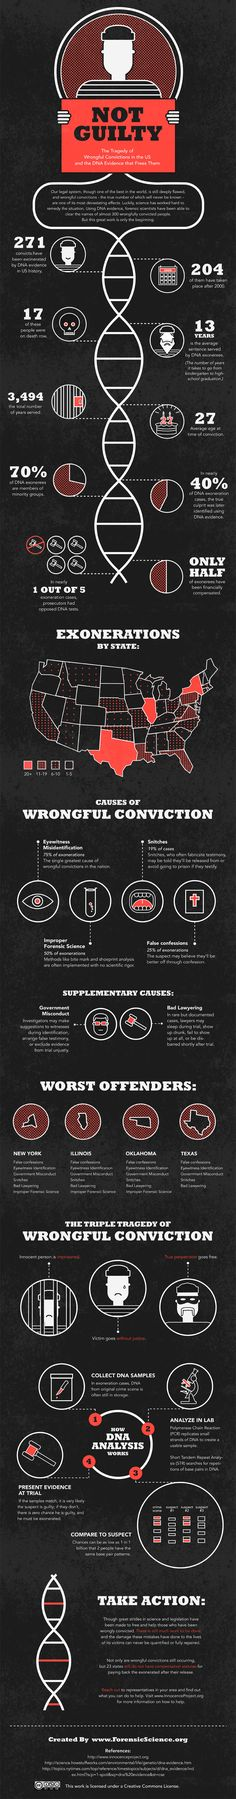 The tragedy of wrongful convictions in the US and the DNA evidence that frees them